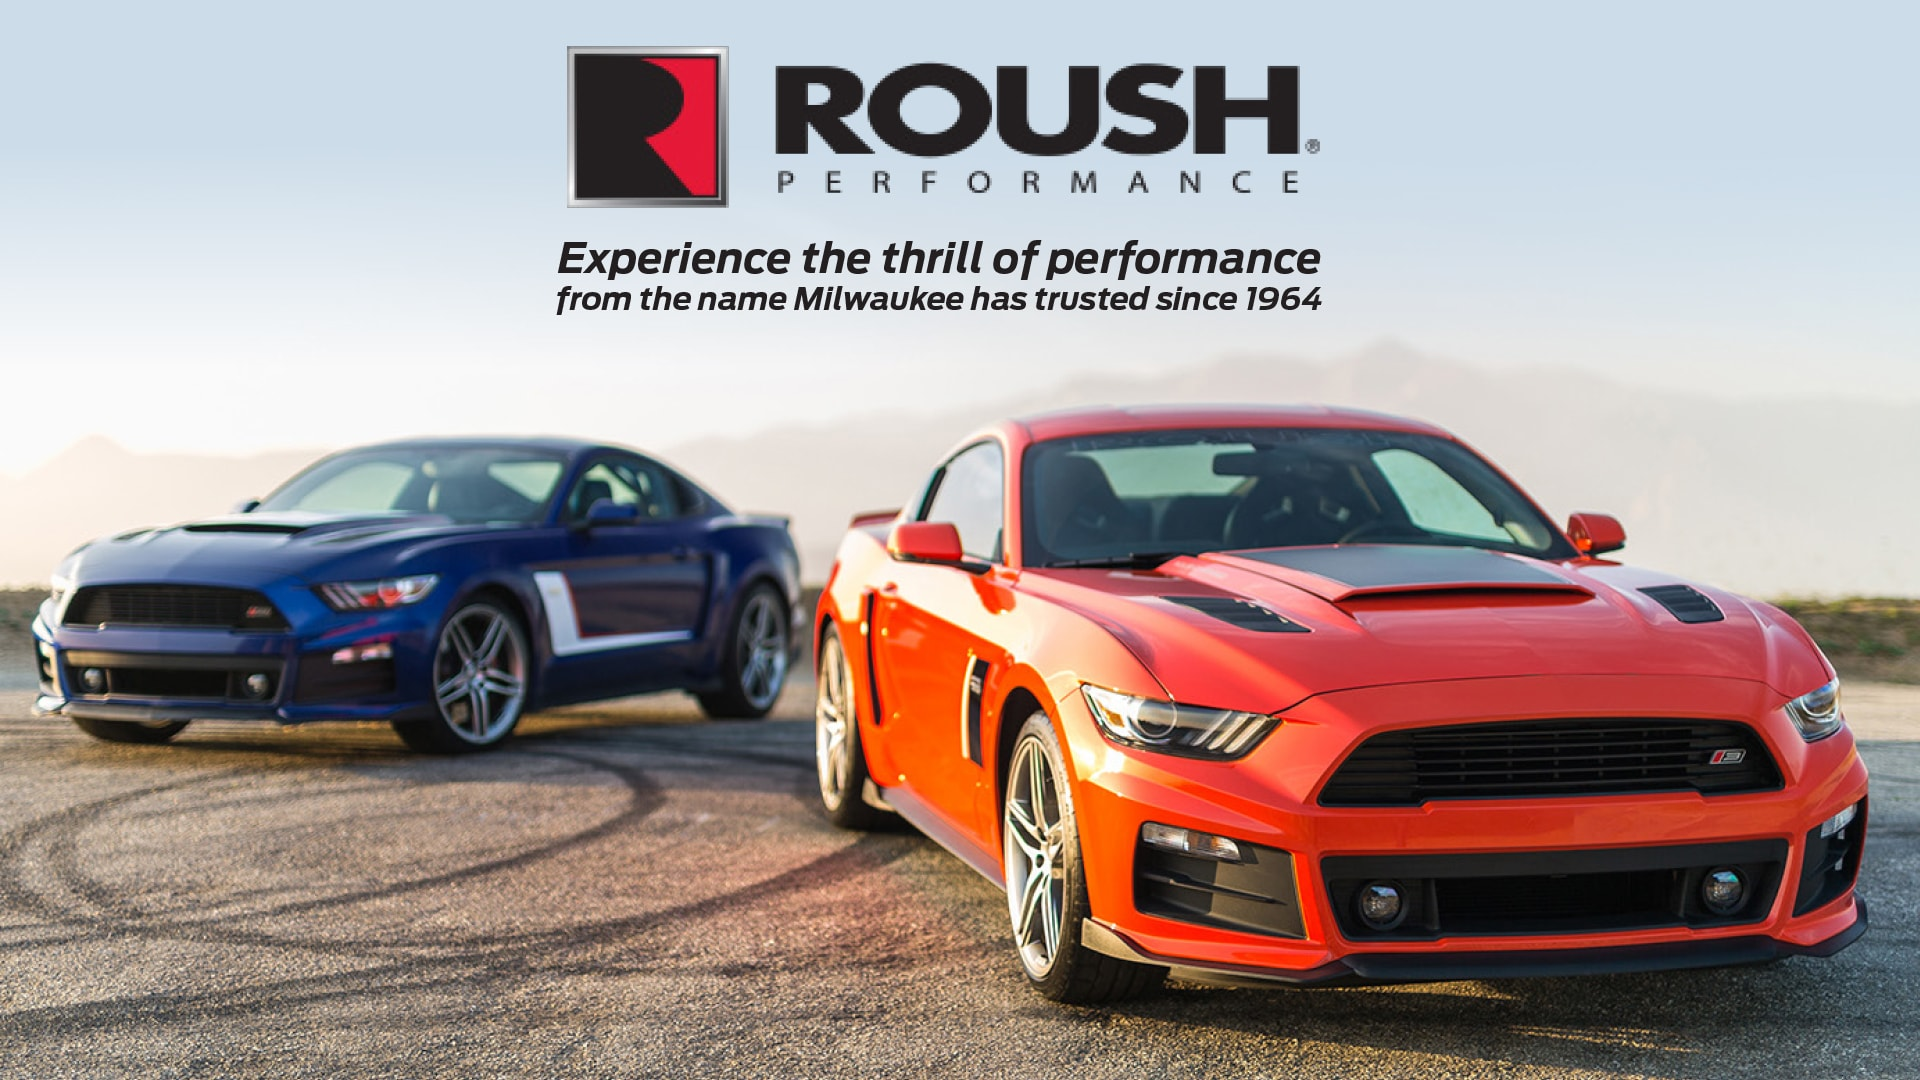 Roush Performance Cars and Trucks For Sale at Feyer Ford